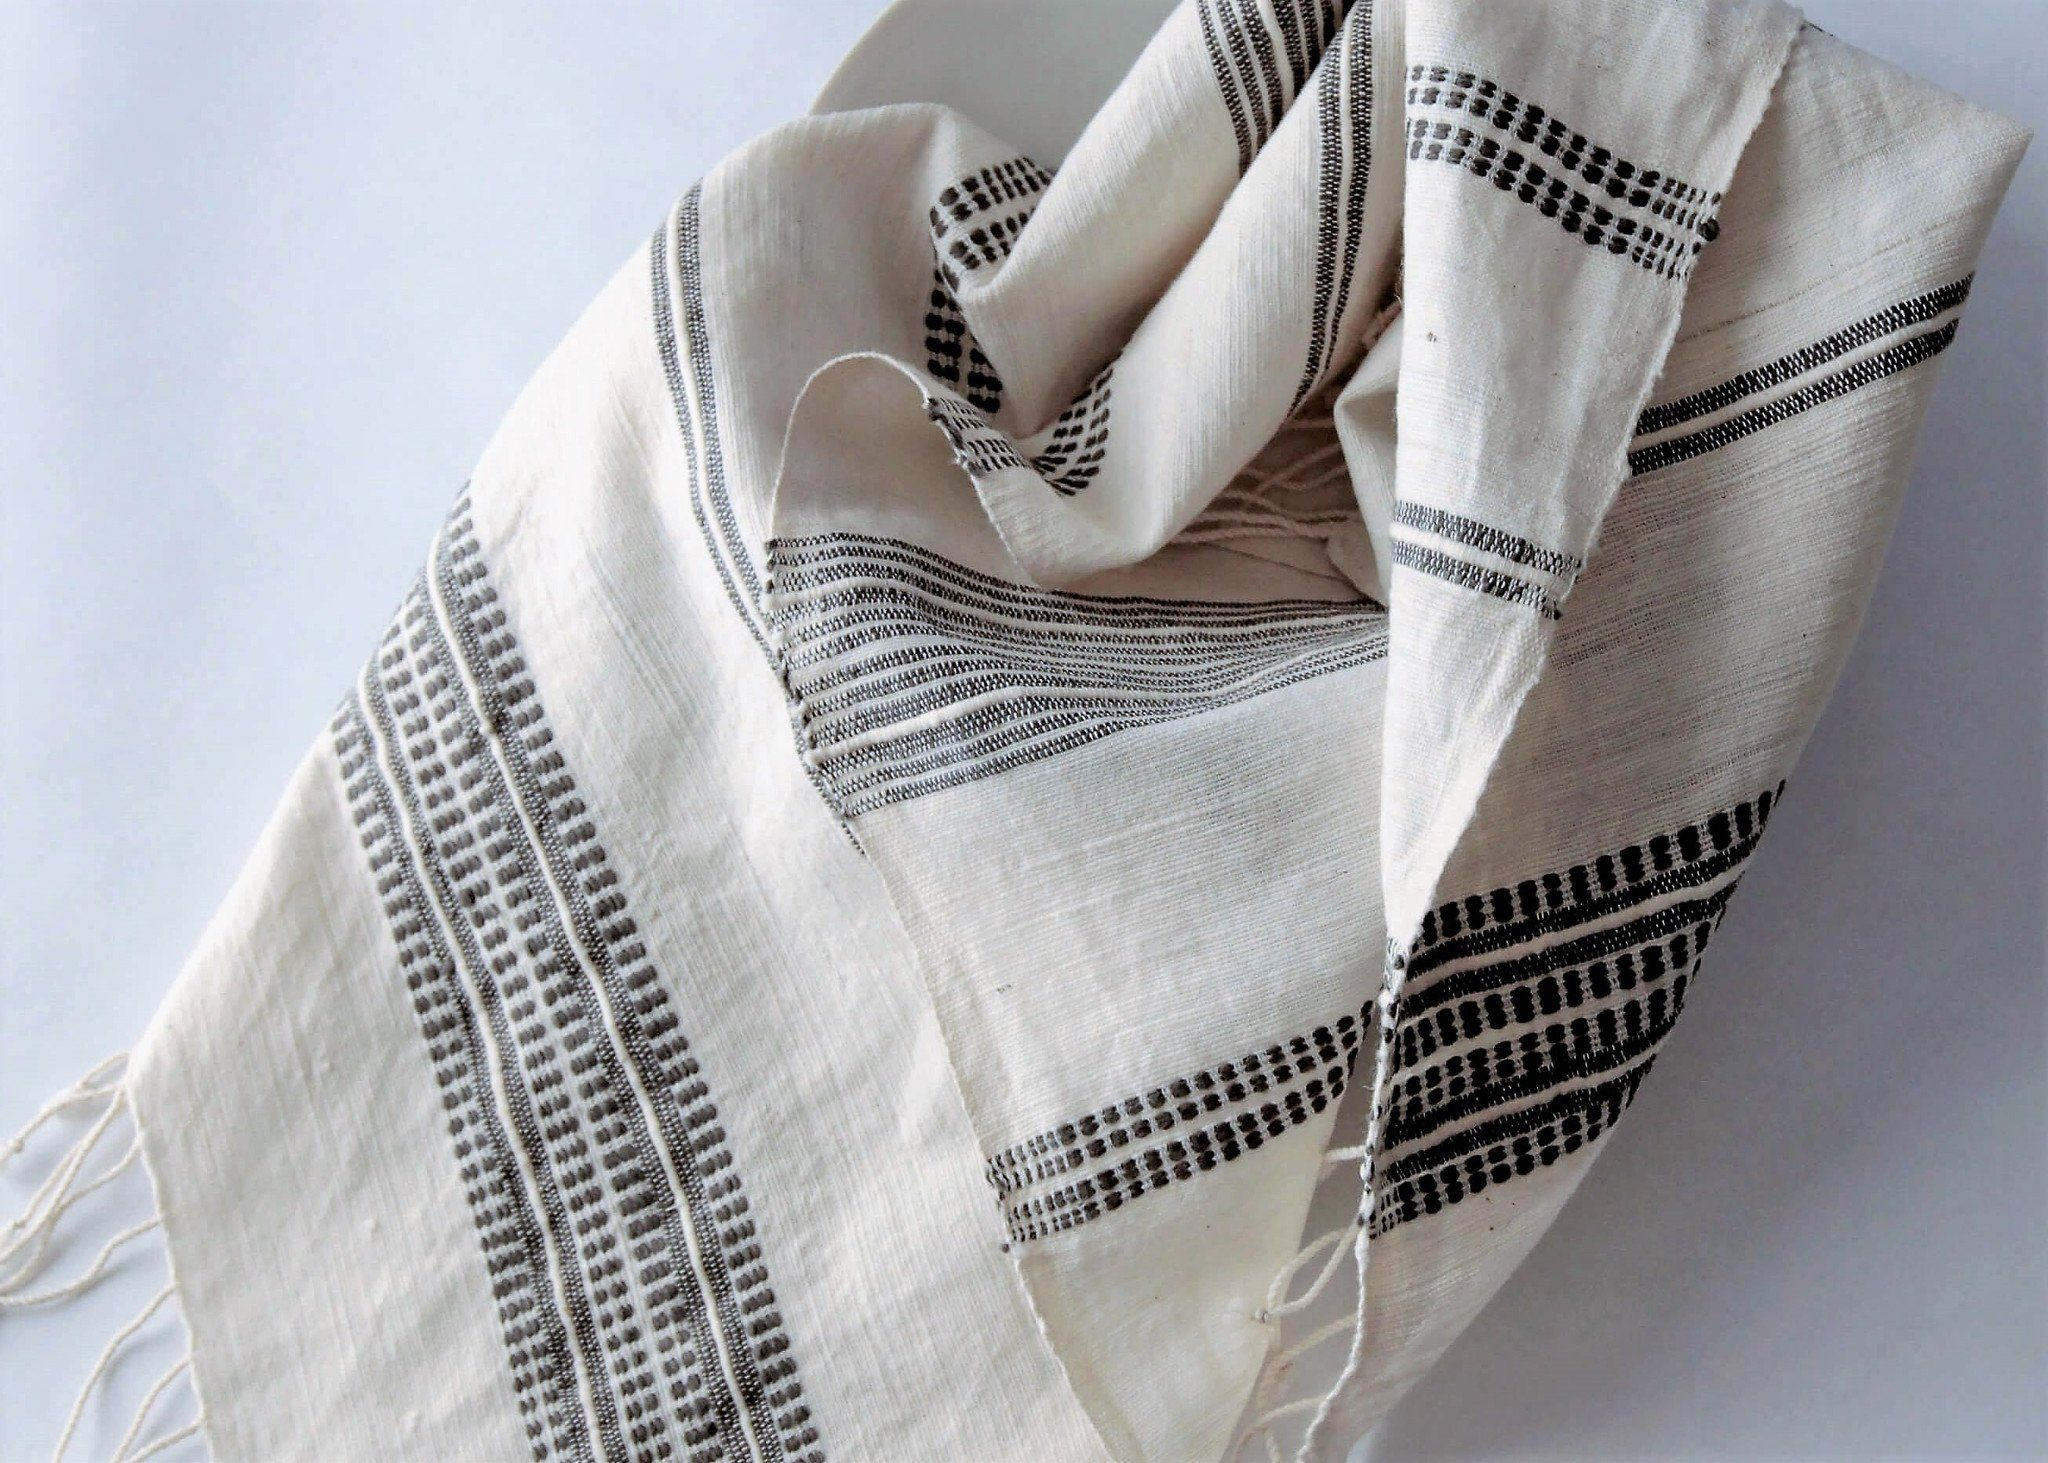 Saba exquisite handwoven towel hand towels towels and spin